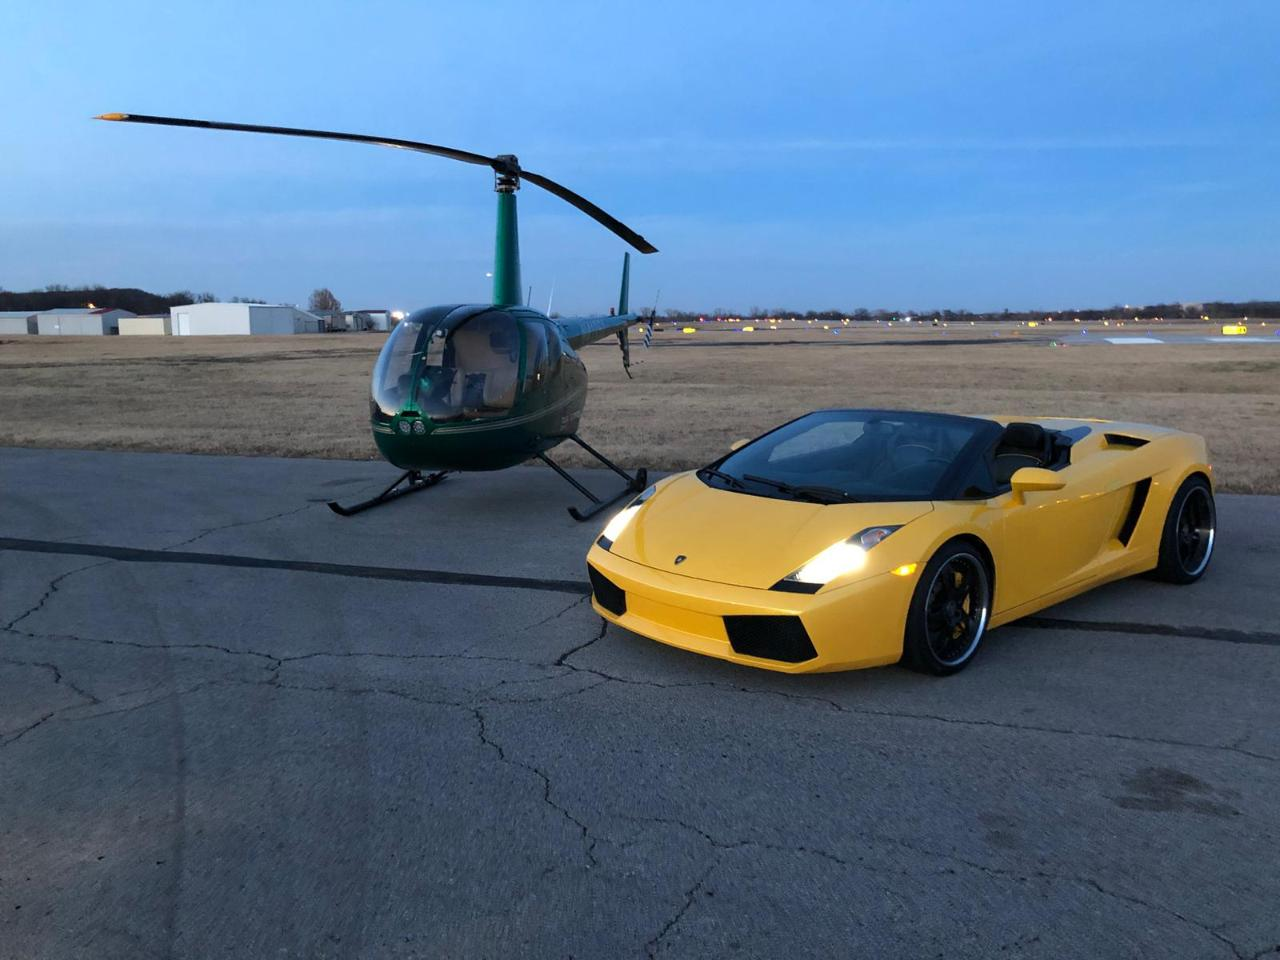 Exotic car ride + Helicopter tour